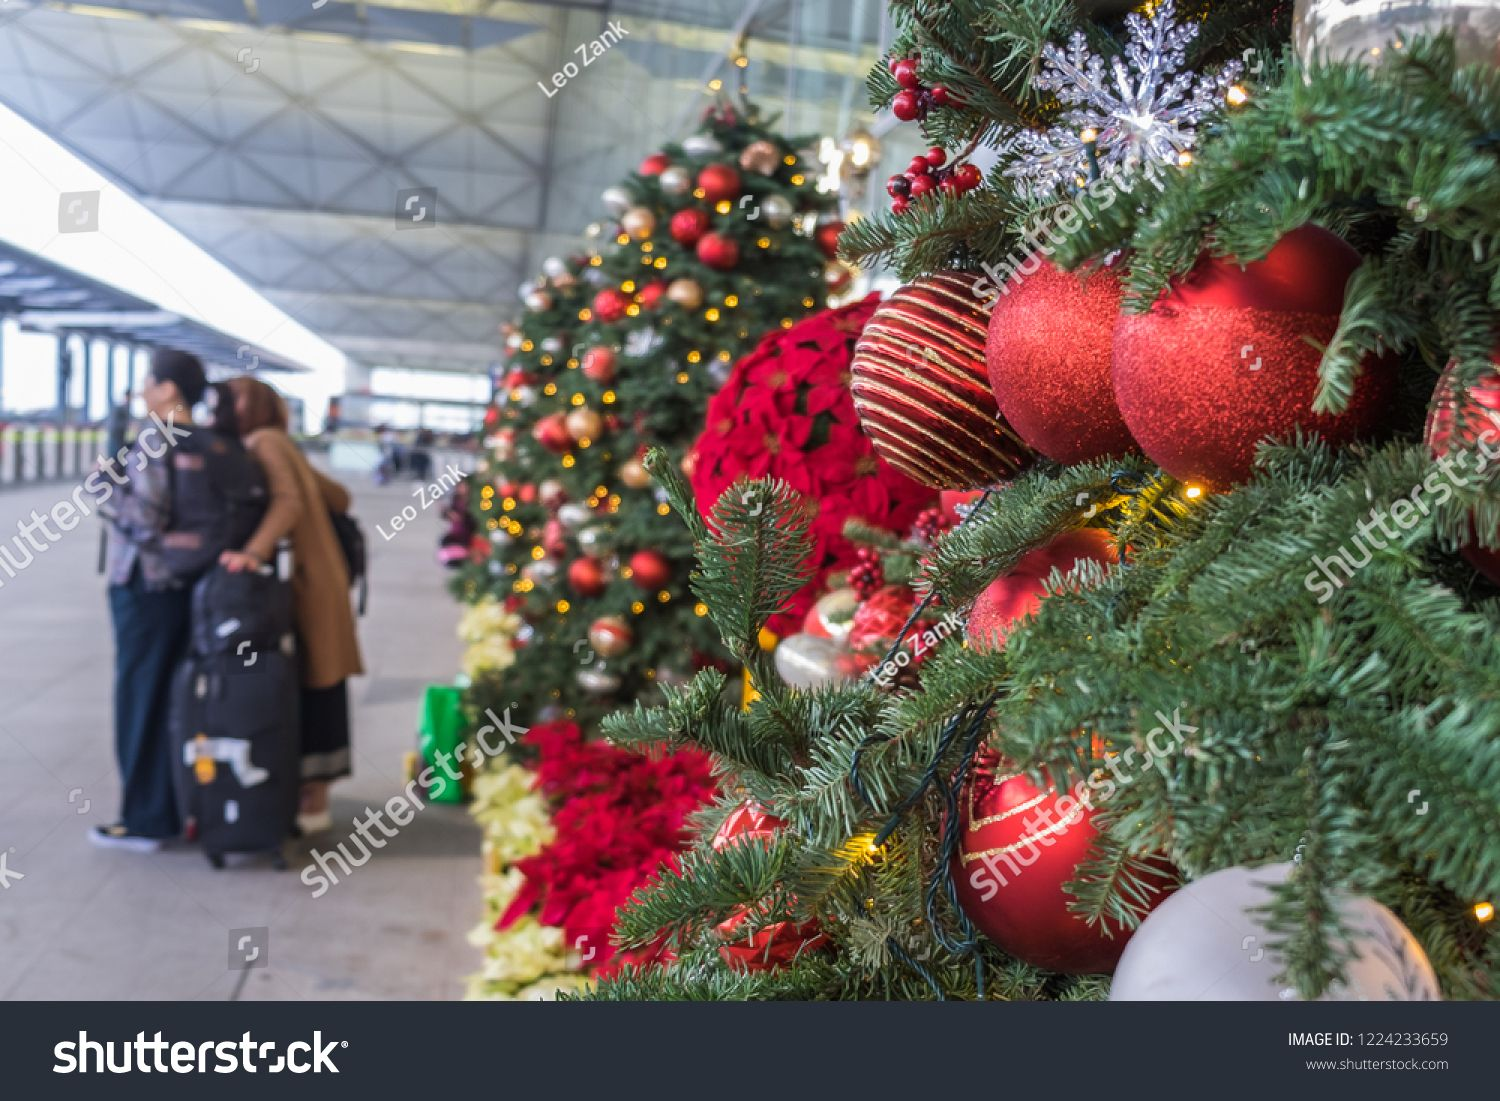 Christmas Decoration In Airport Outside Departure Zone In Hong Kong International Airport Christmas Christmas Decorations Garland Christmas Wreaths